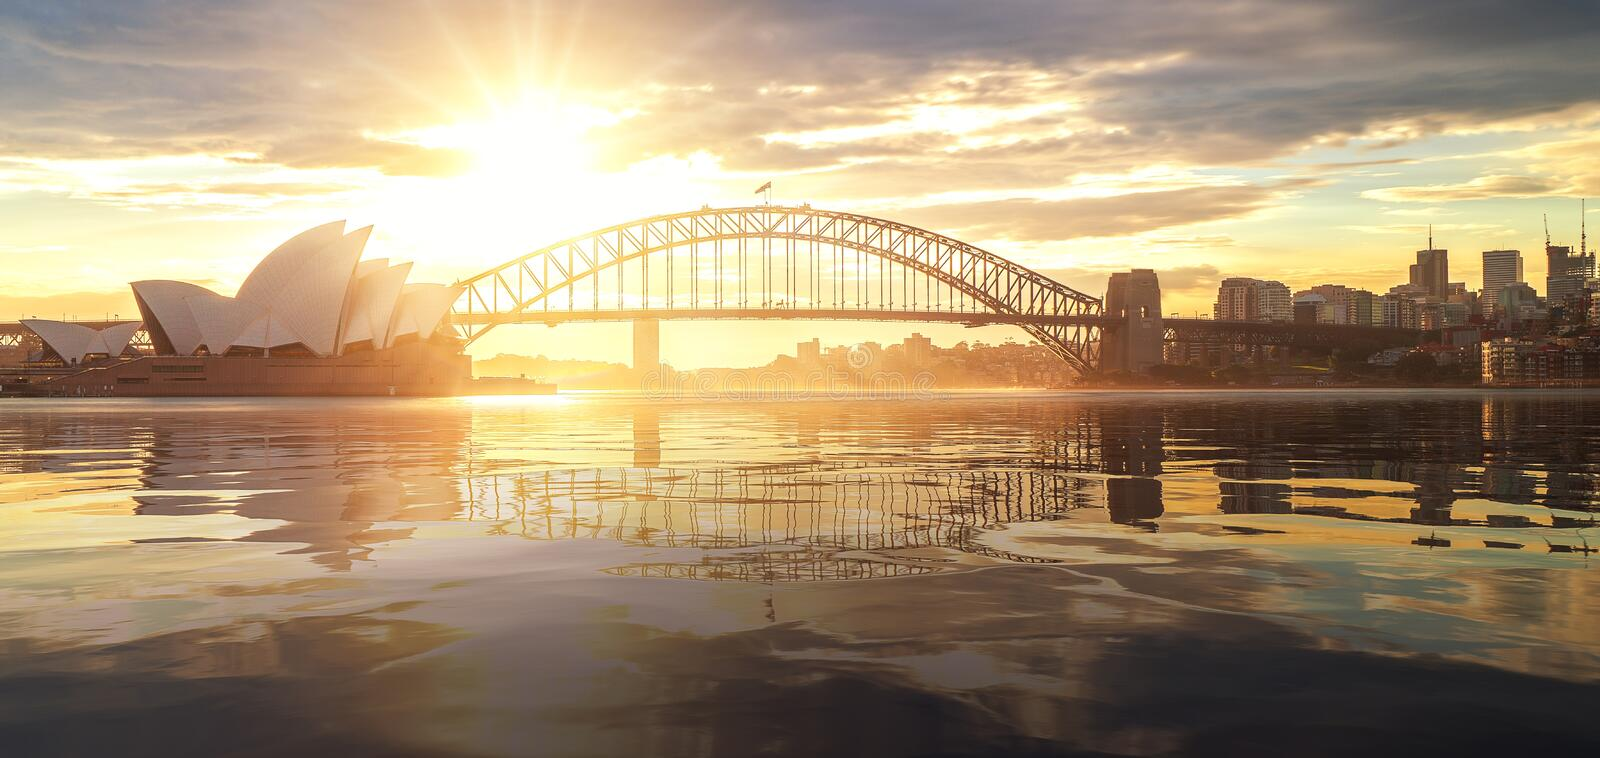 Cityscape of Sysney harbour and bridge with morning sunrise moment. And boat in the sea, New south wales, Australia, this immage can use for travel, trorist and royalty free stock photography